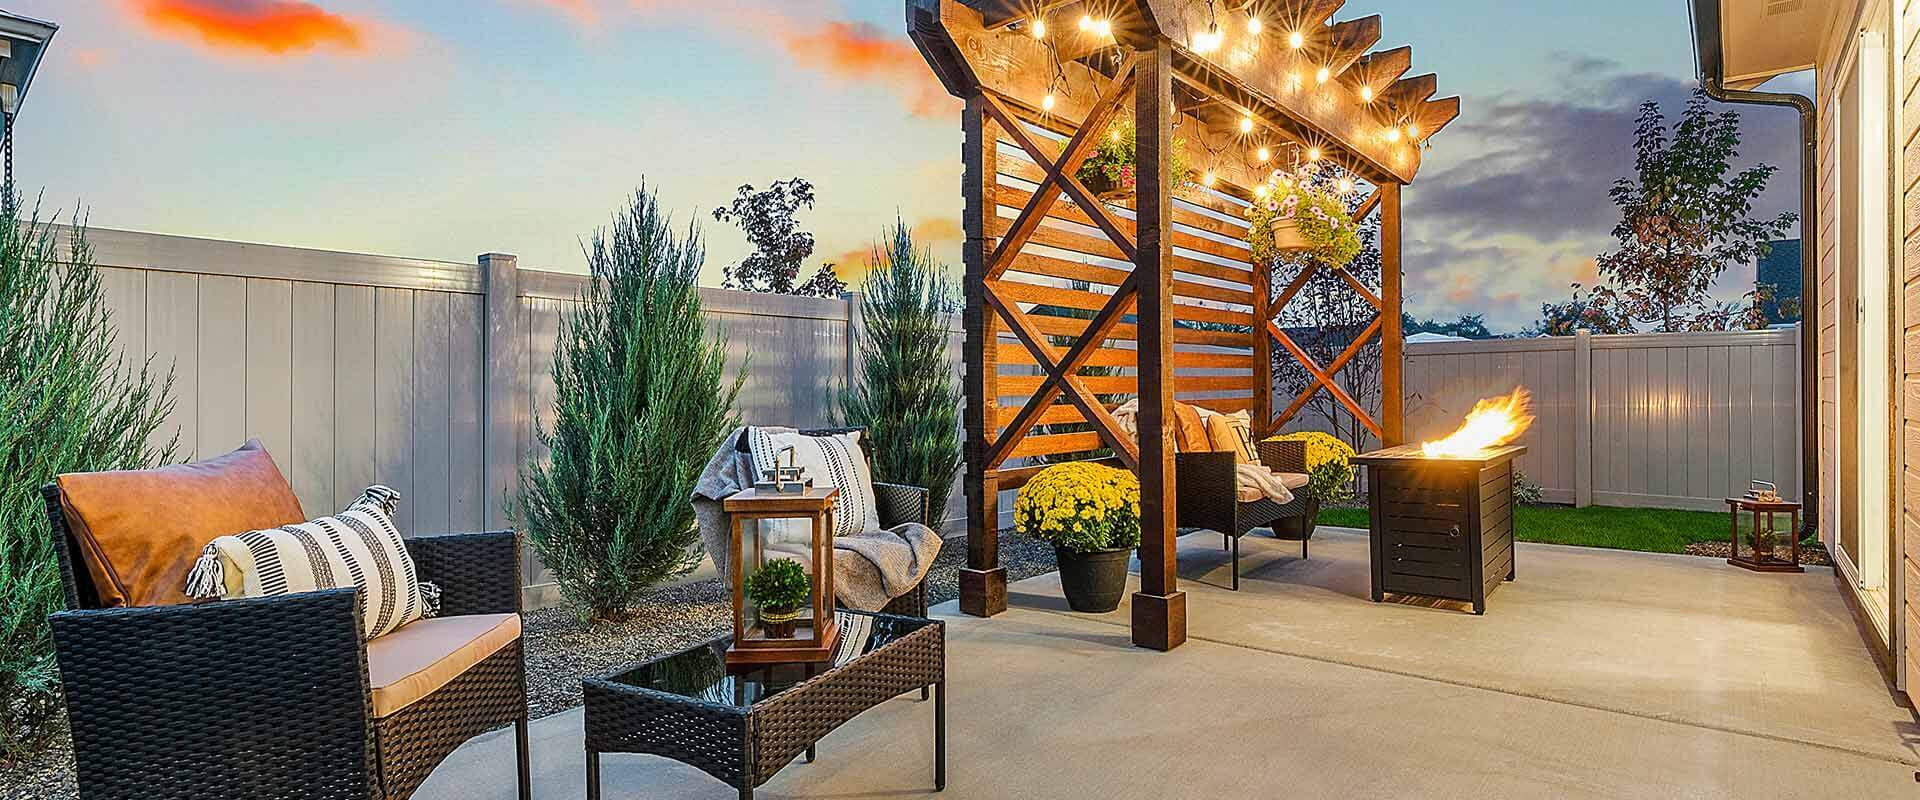 Hubble Homes Parade Home-New-Homes-Star-Idaho-Backyard.jpg